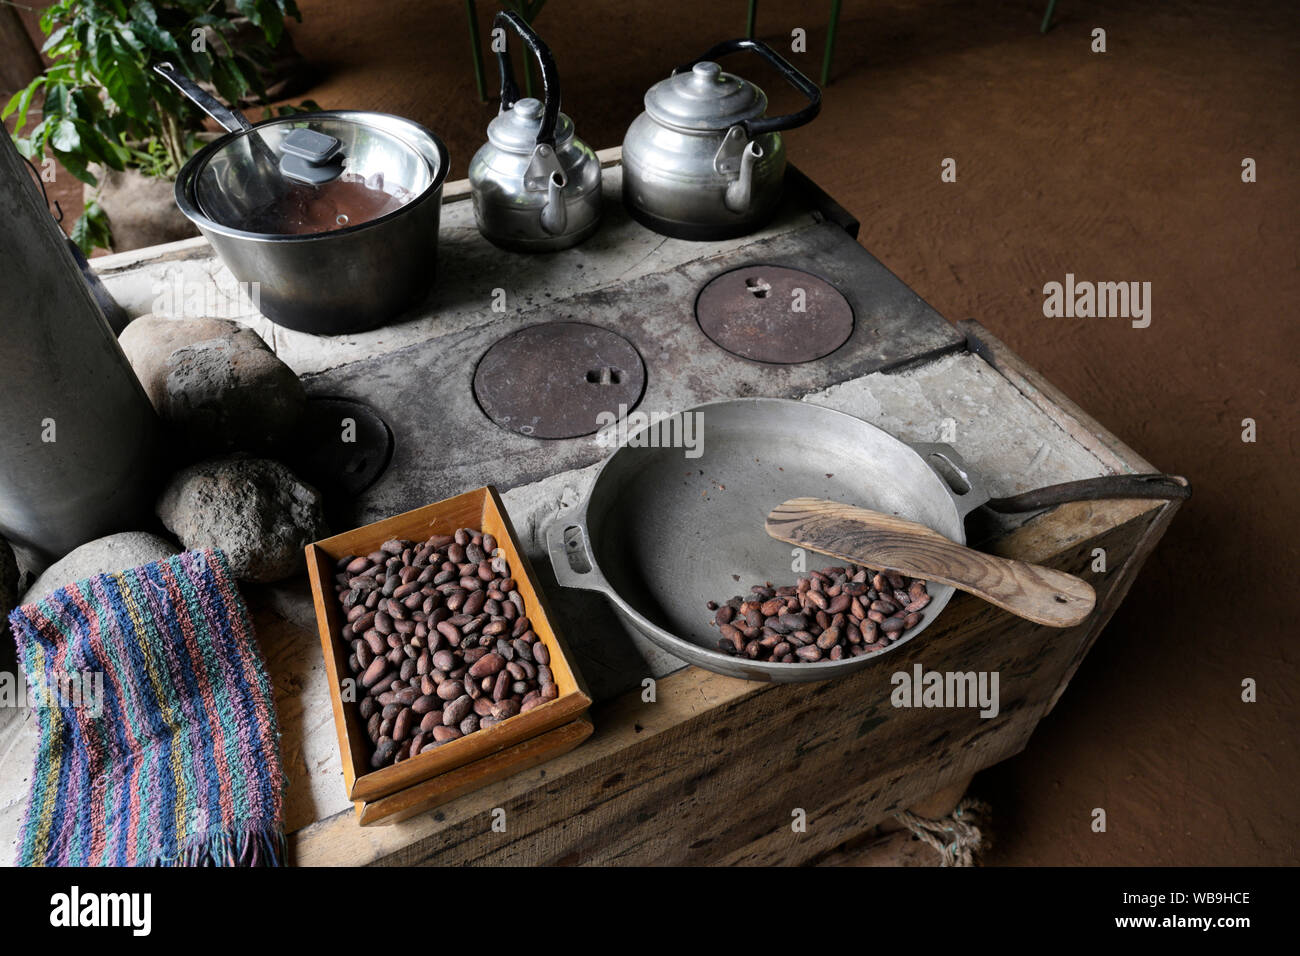 Roasting cacao seeds and making cocoa at a chocolate farm, Costa Rica Stock Photo